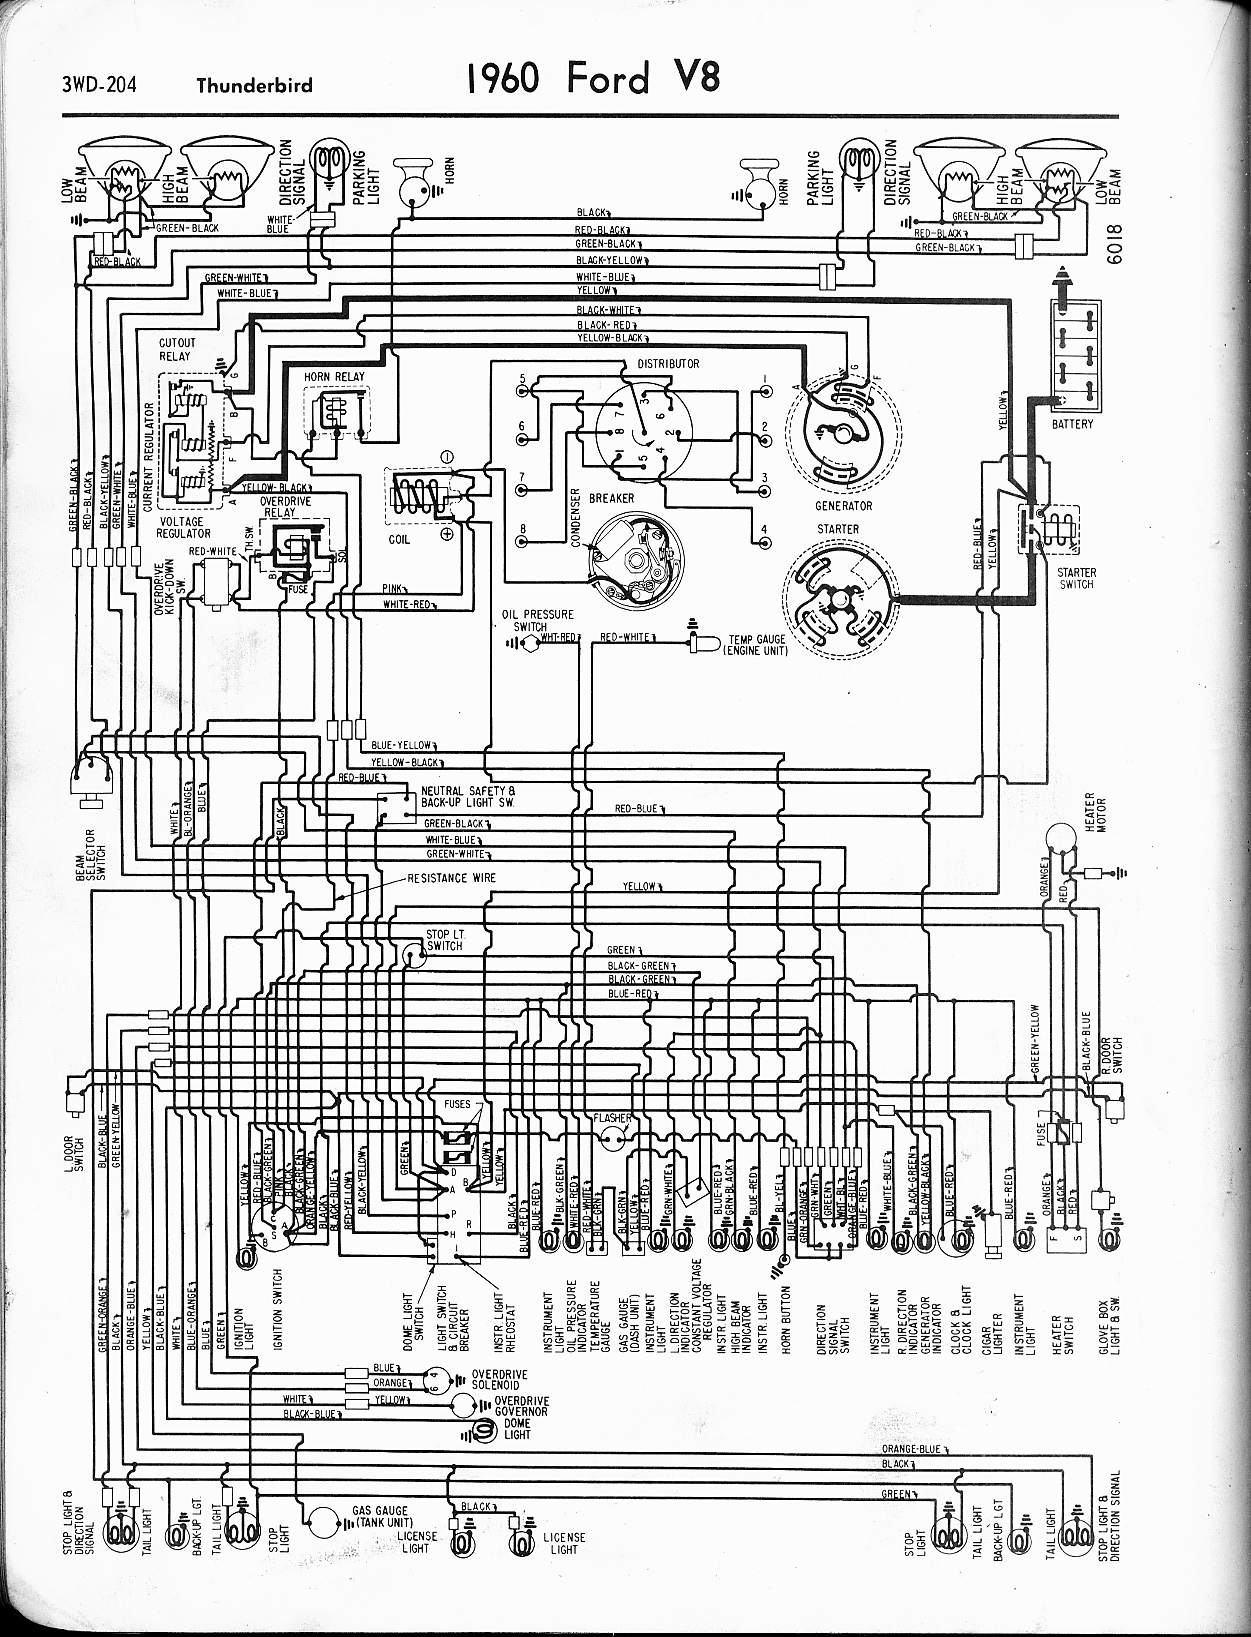 hight resolution of 1960 thunderbird 57 65 ford wiring diagrams 1960 thunderbird